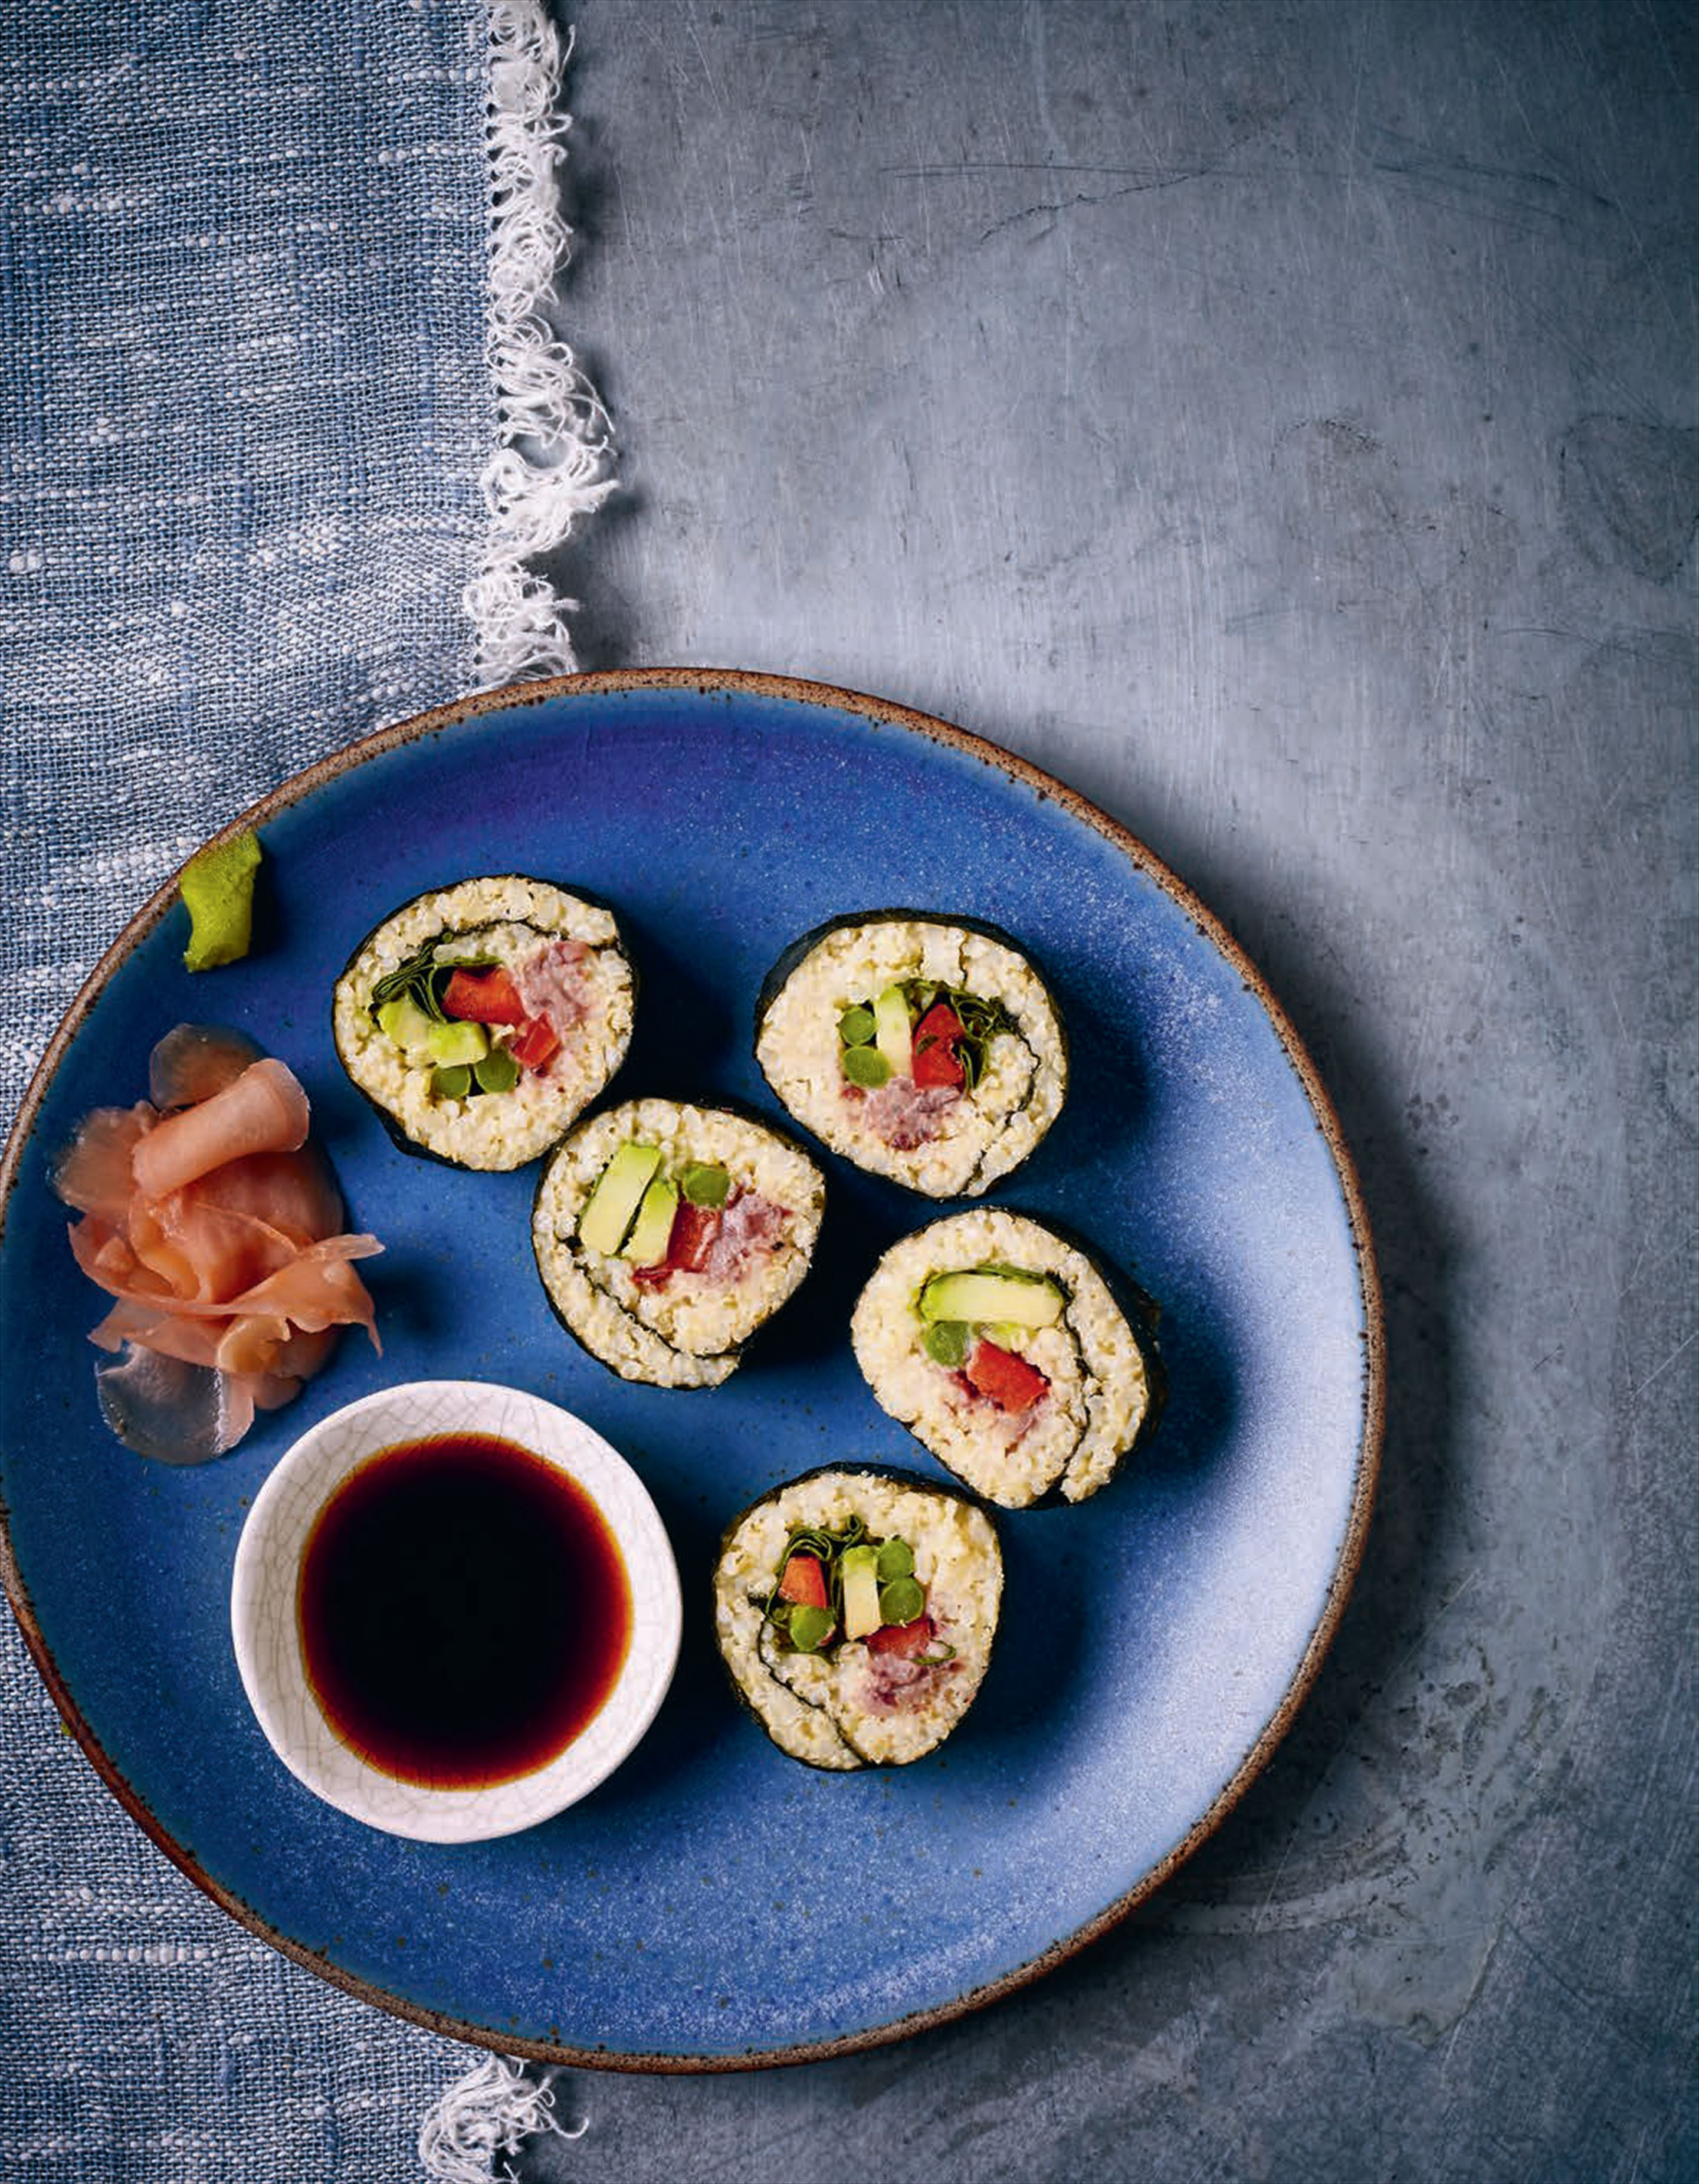 Millet and watercress sushi with creamy aduki bean paste